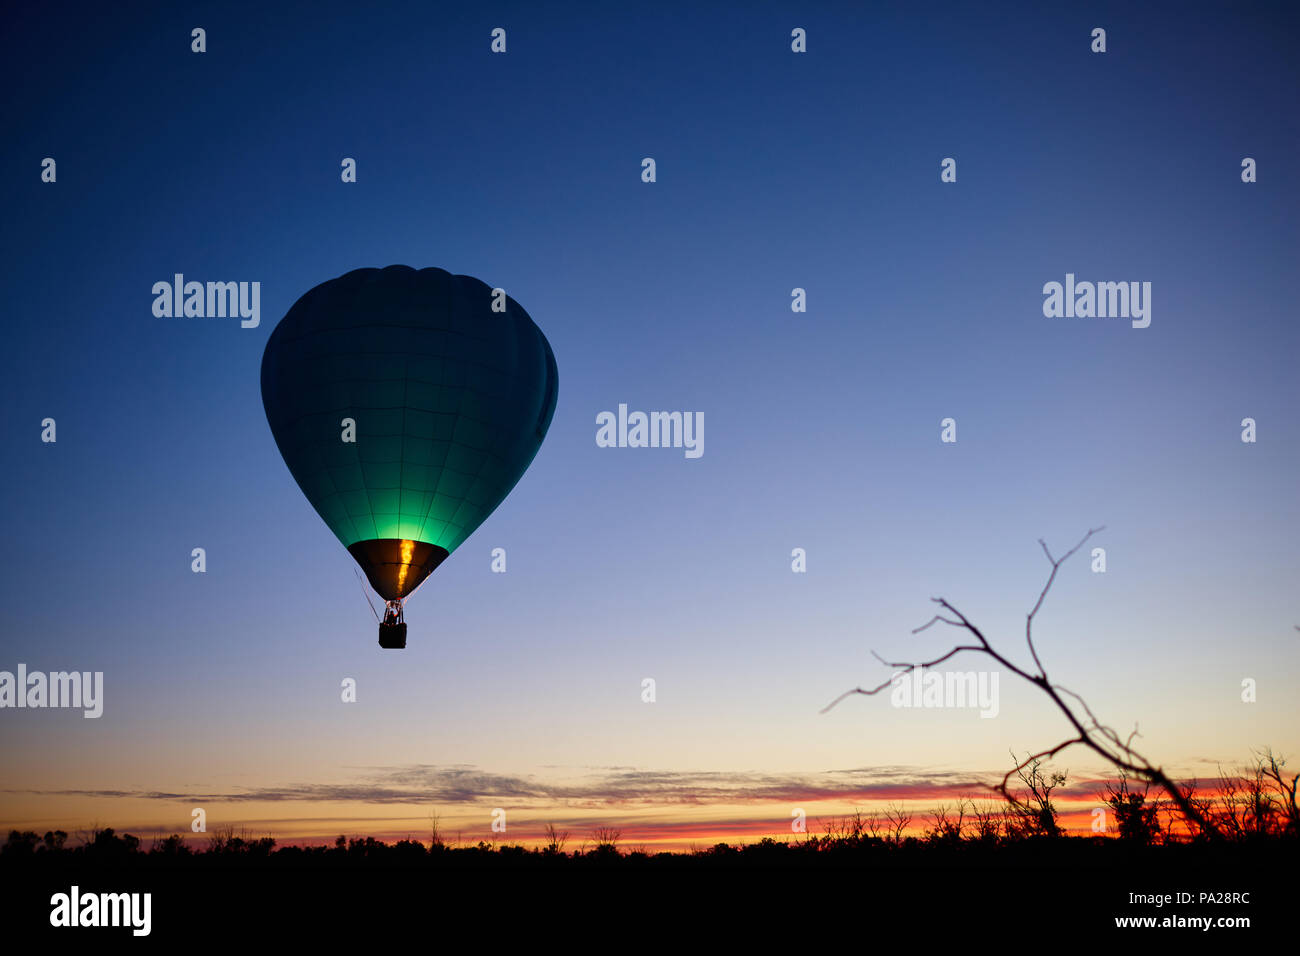 19th July 2018, two hot air balloons attempting a long distance flight, launch from a field near Merbein in North West Victoria. The balloon pictured  - Stock Image